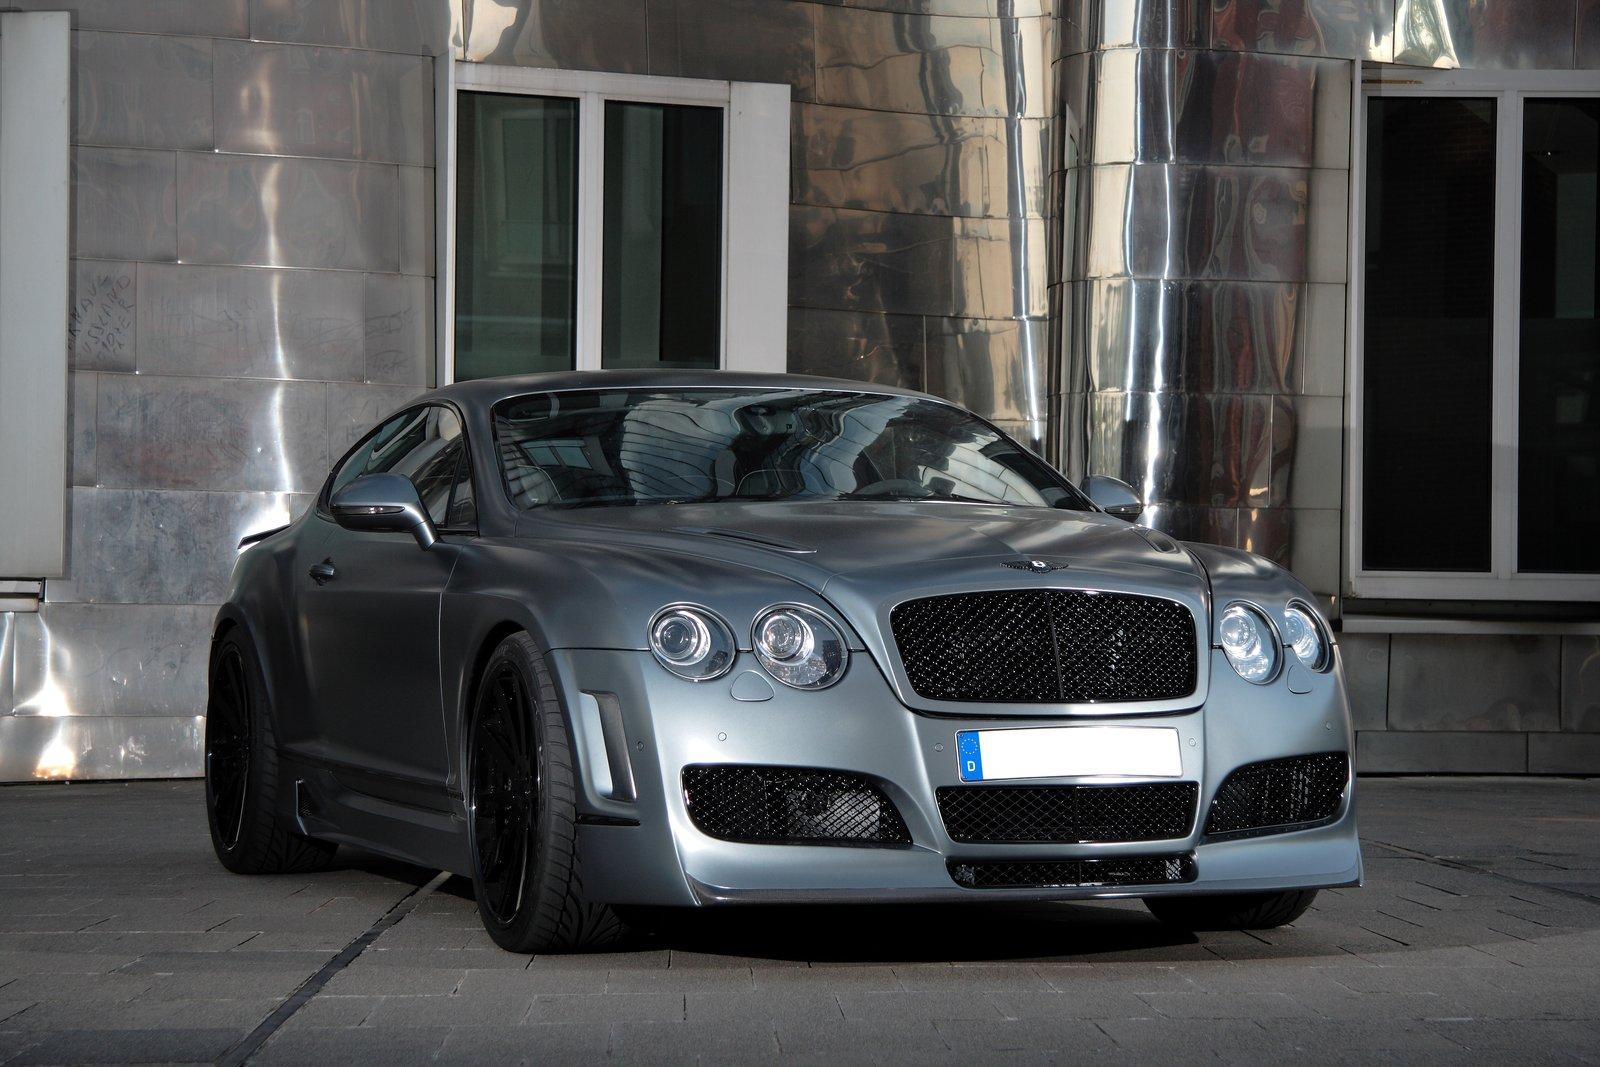 2010 bentley continental gt supersports by anderson new car used car reviews picture. Black Bedroom Furniture Sets. Home Design Ideas